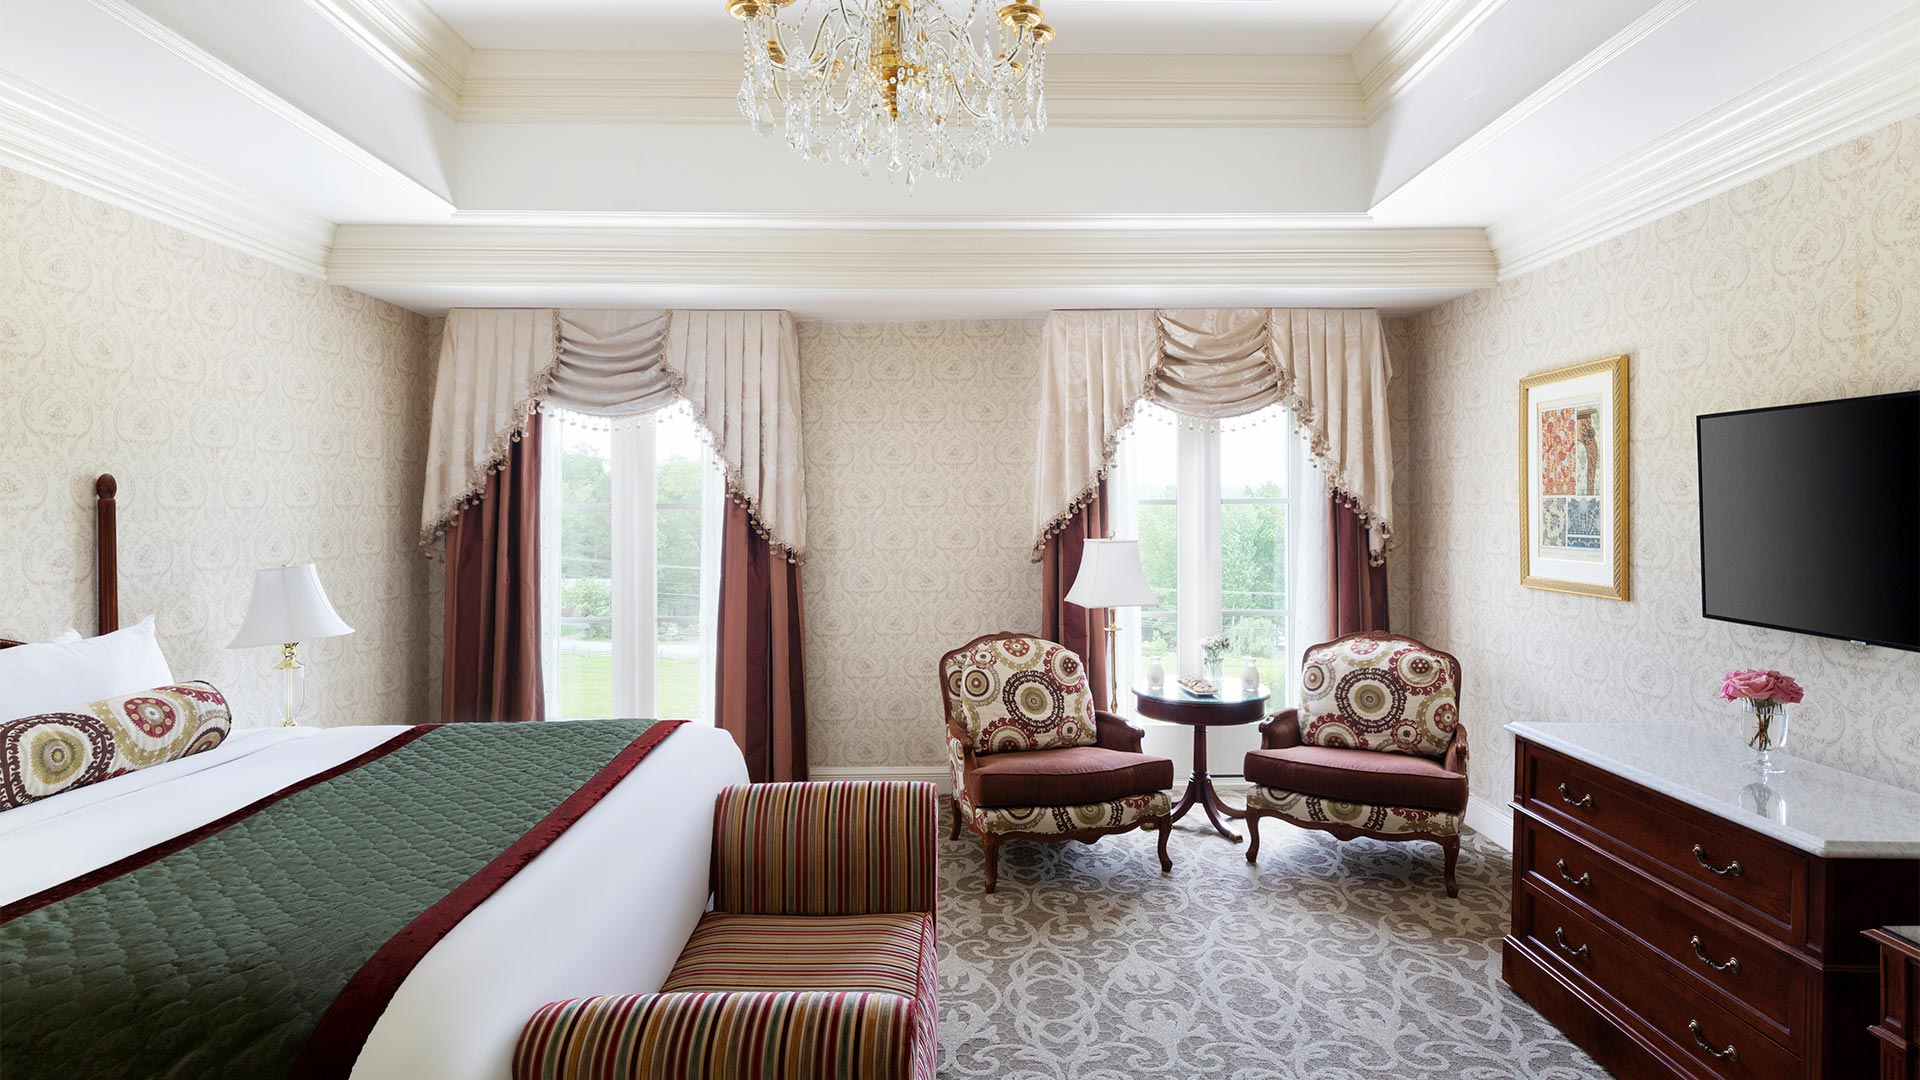 interior shot of The Chateau's king accommodation. There is a king bed with white and green linens. The room also includes views of the resort grounds, a small sitting area and a tv with a dresser.